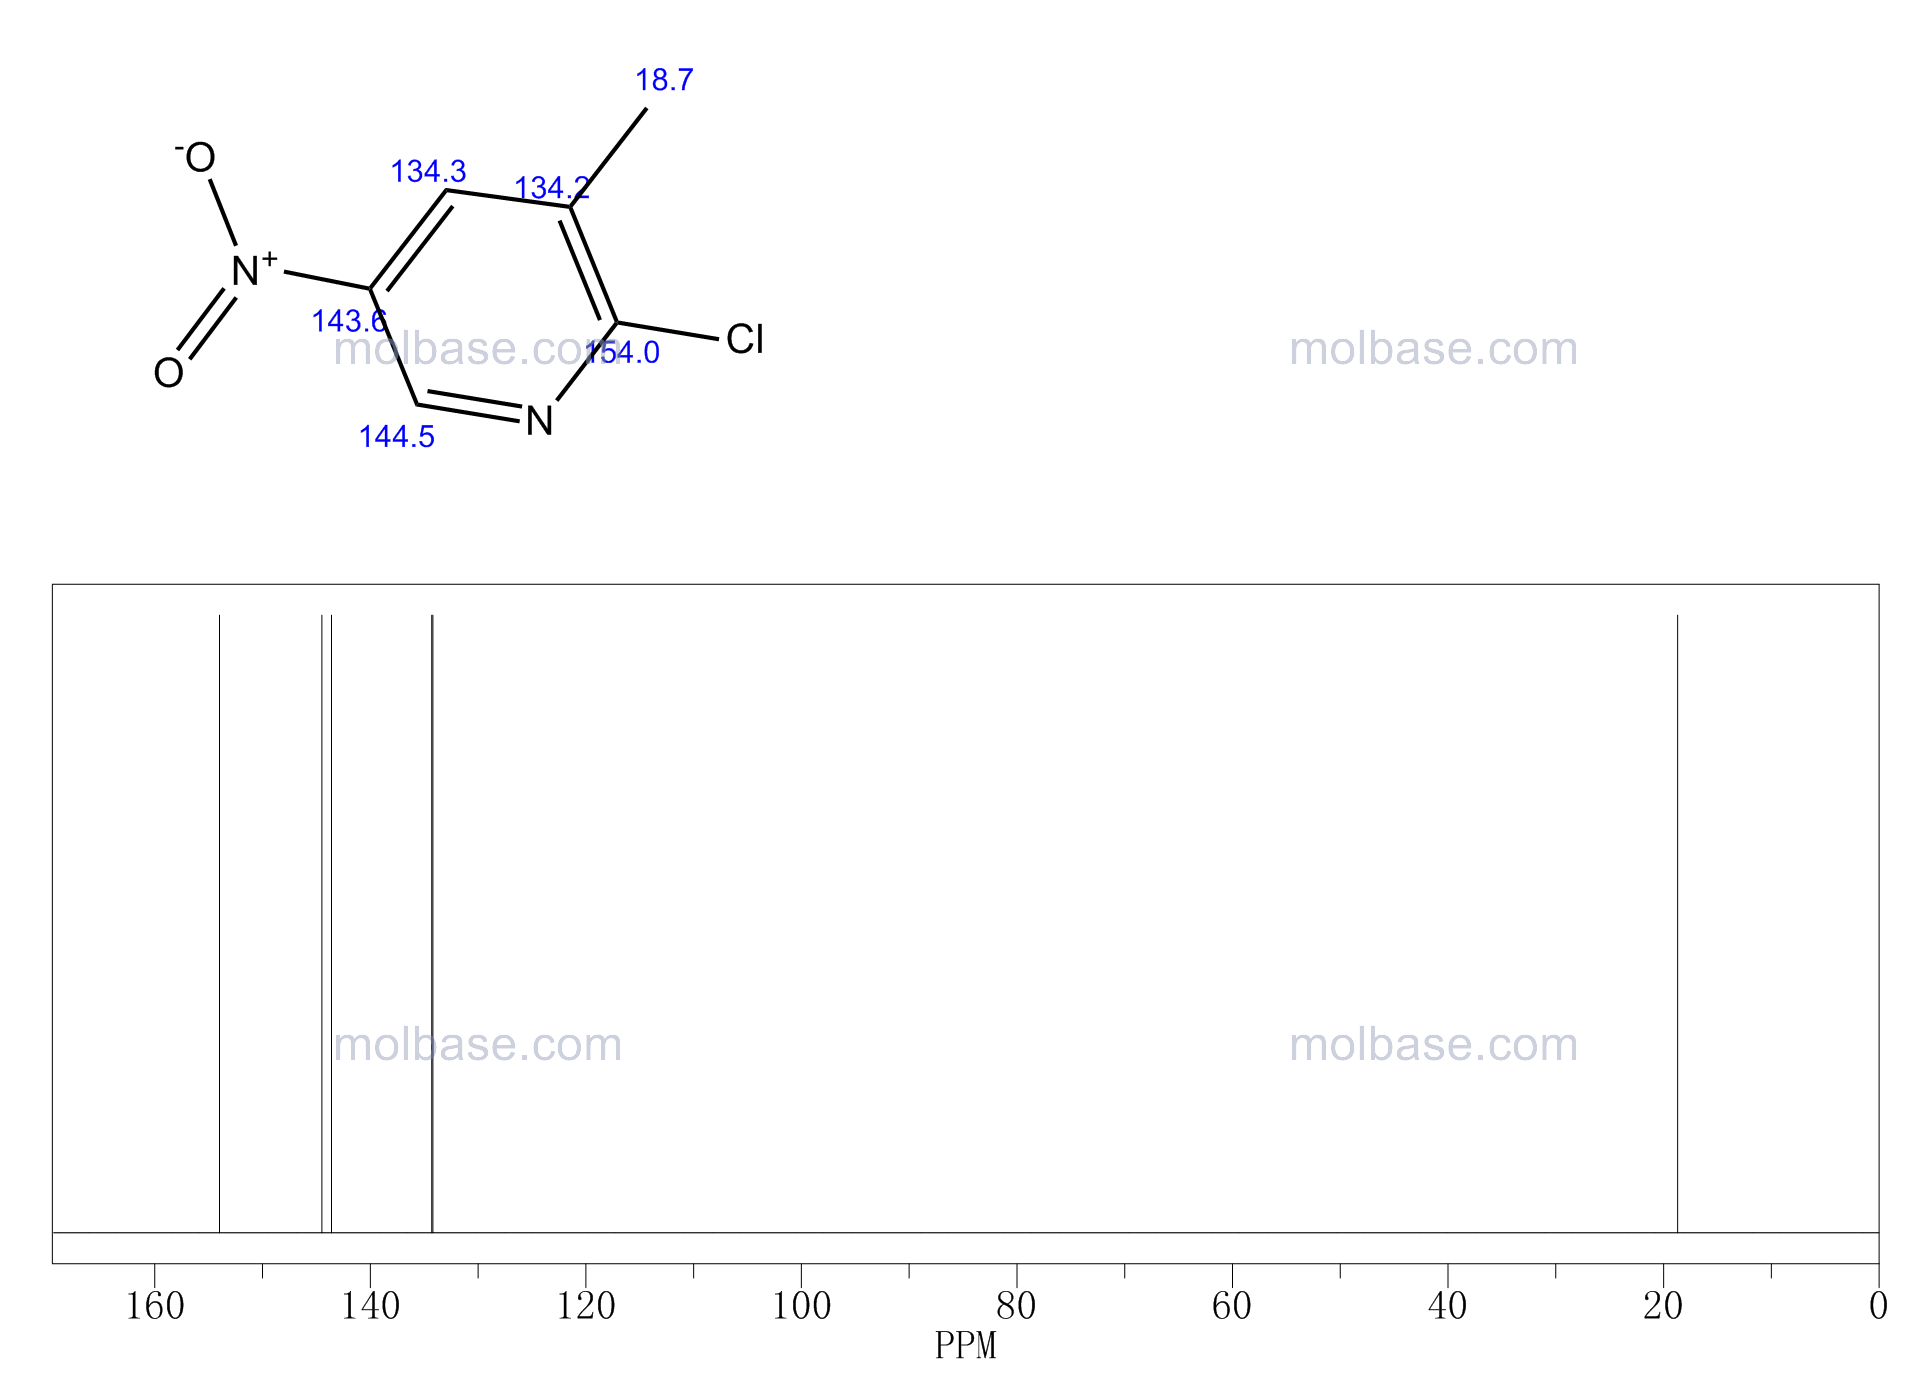 2-Chloro-3-methyl-5-nitropyridine NMR spectra analysis, Chemical CAS NO. 22280-56-4 NMR spectral analysis, 2-Chloro-3-methyl-5-nitropyridine C-NMR spectrum